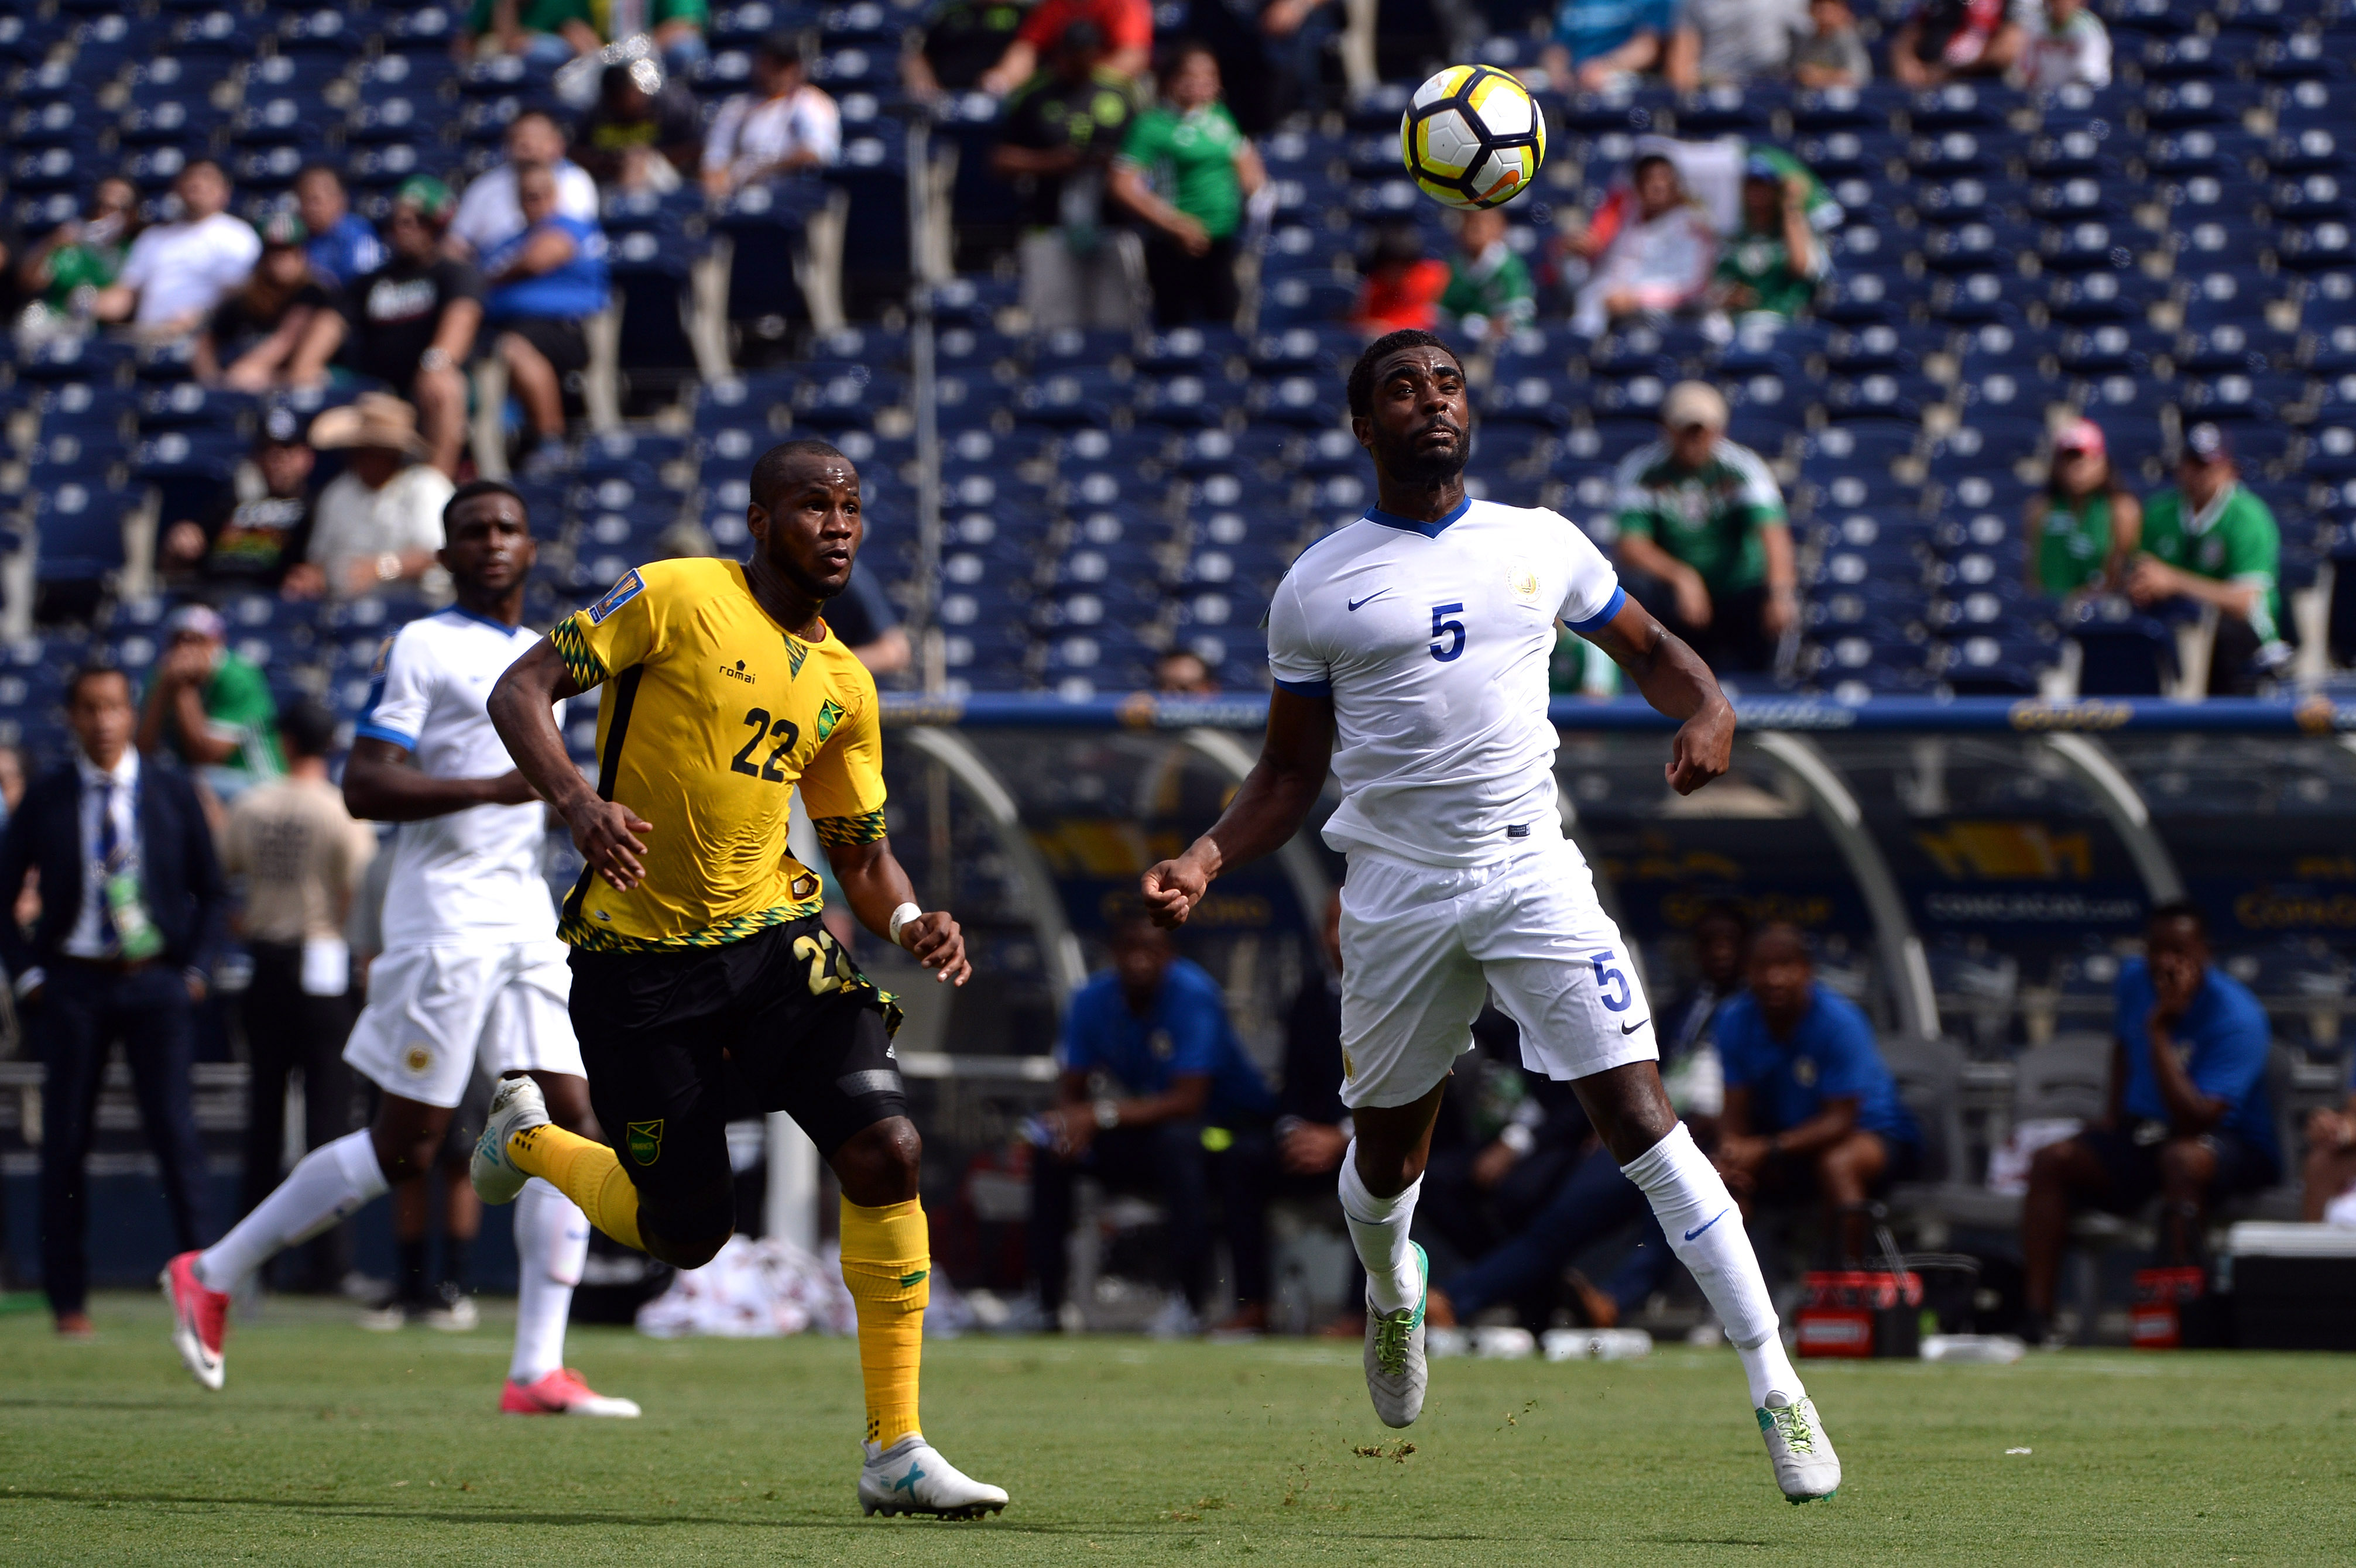 Soccer: 2017 CONCACAF Gold Cup-Curacao at Jamaica